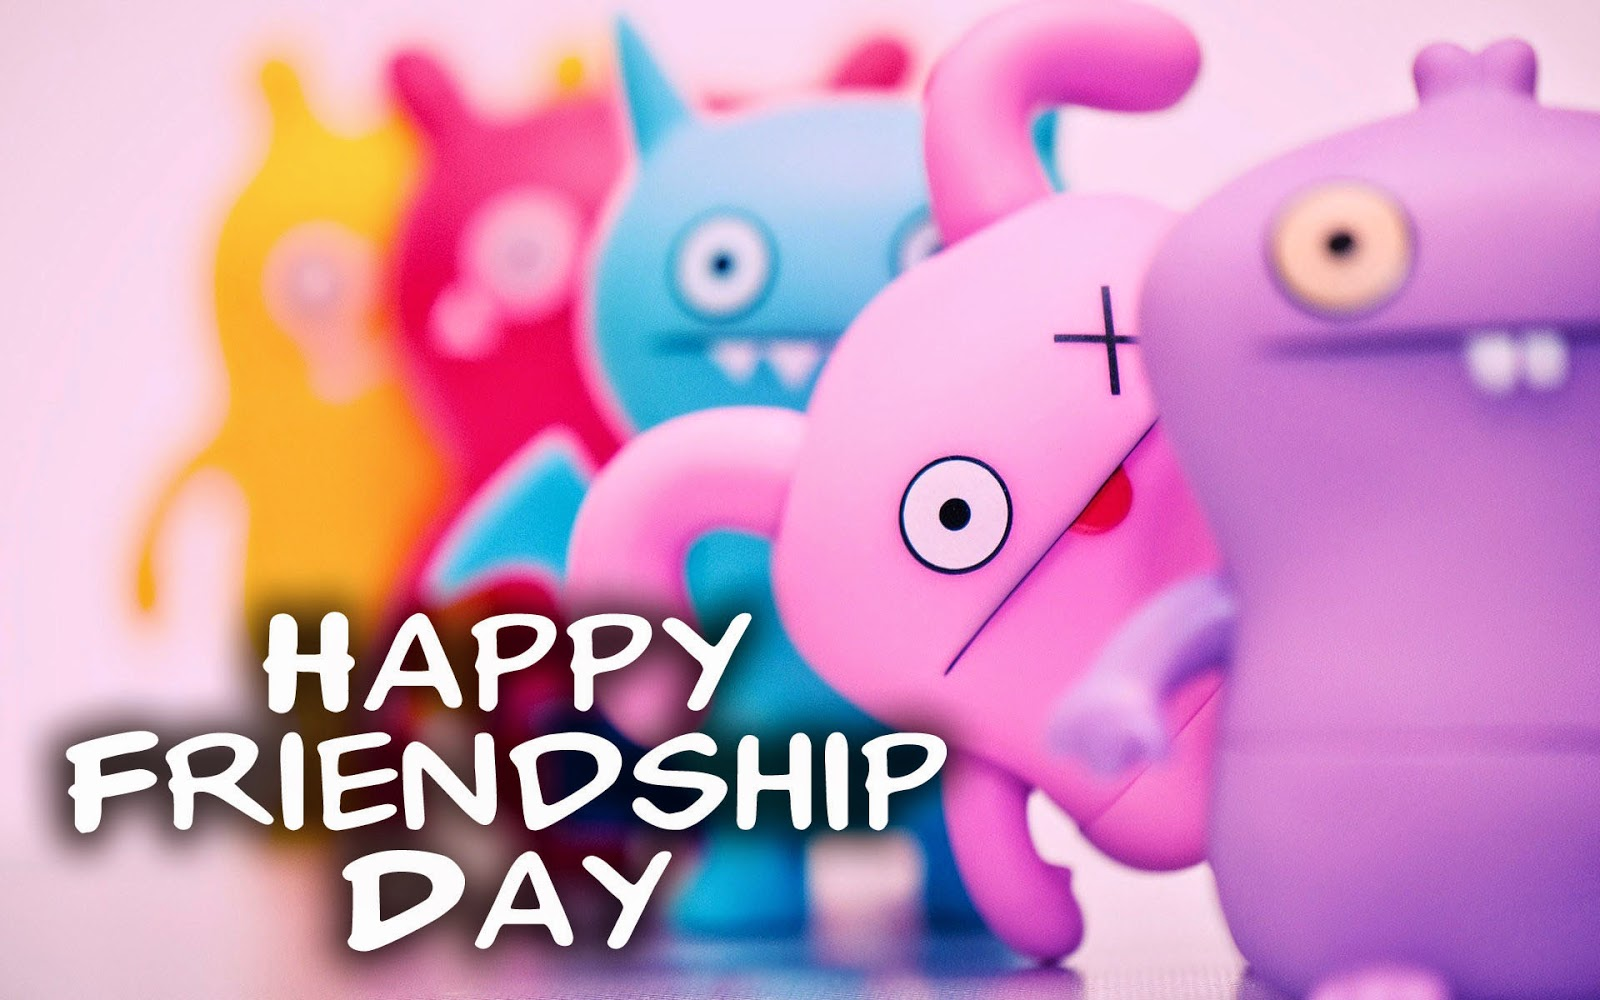 10 Beautiful Friendship Day Quotes To Celebrate This